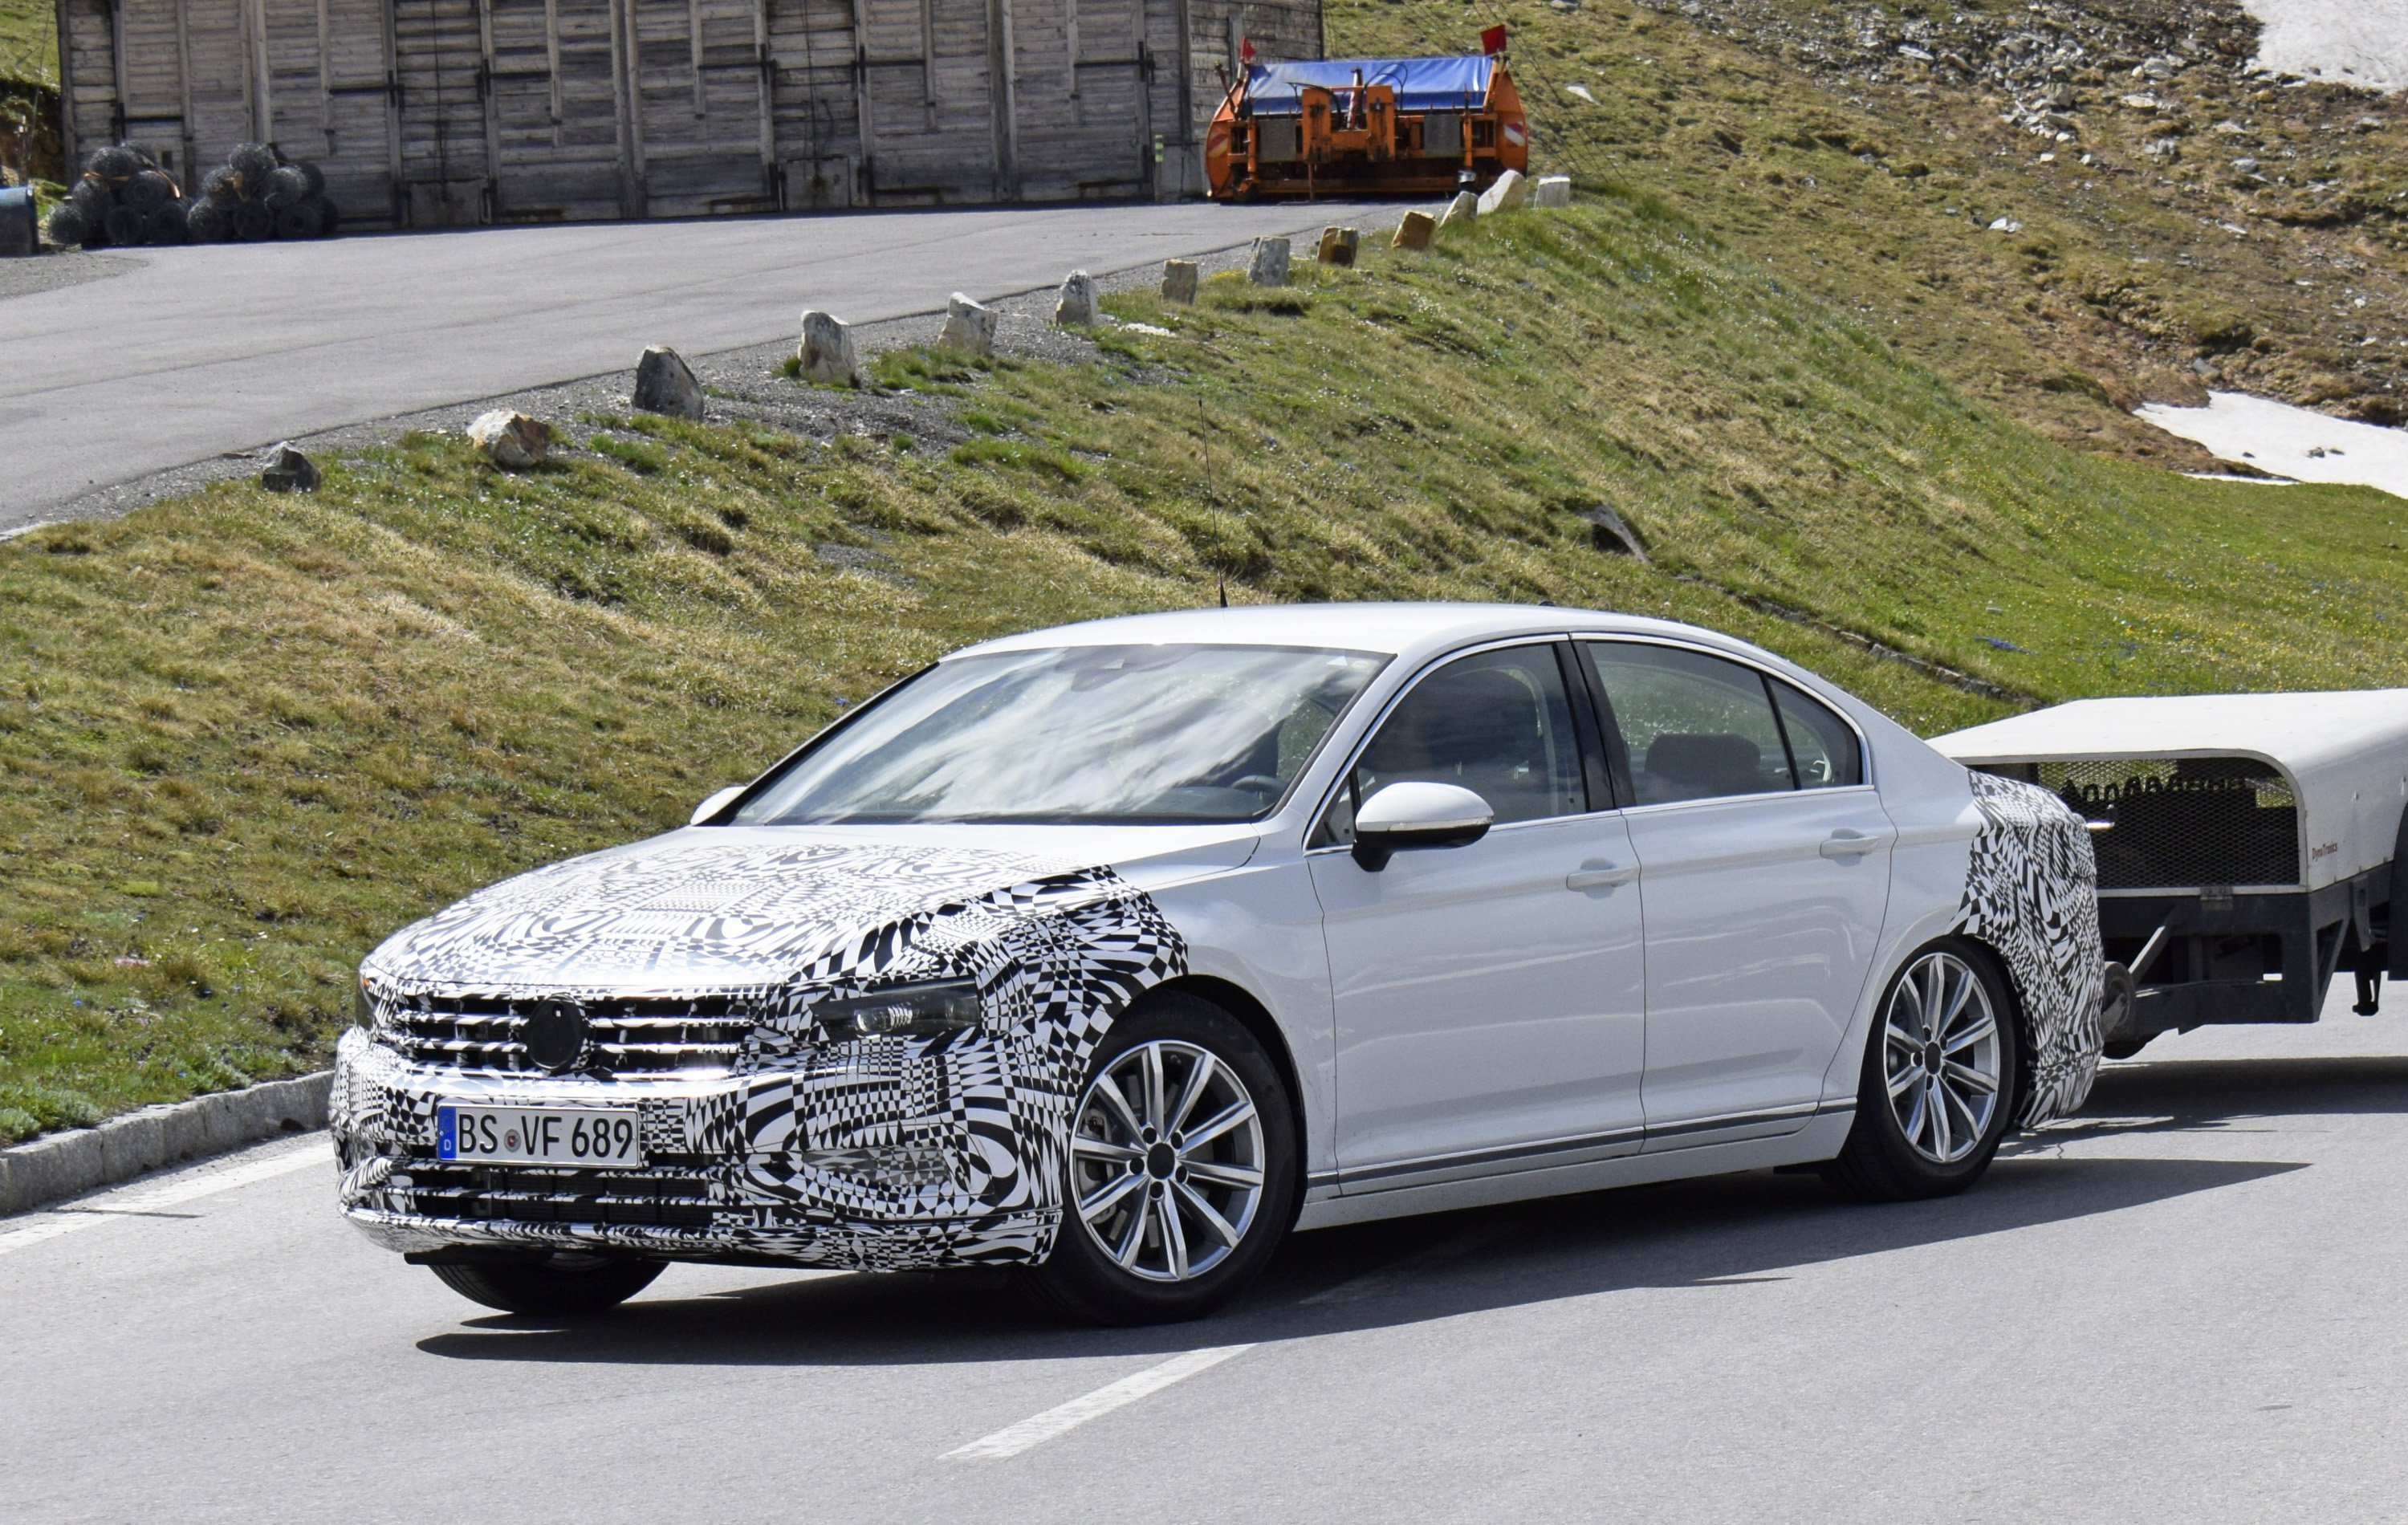 83 New 2019 Volkswagen Cc Configurations for 2019 Volkswagen Cc